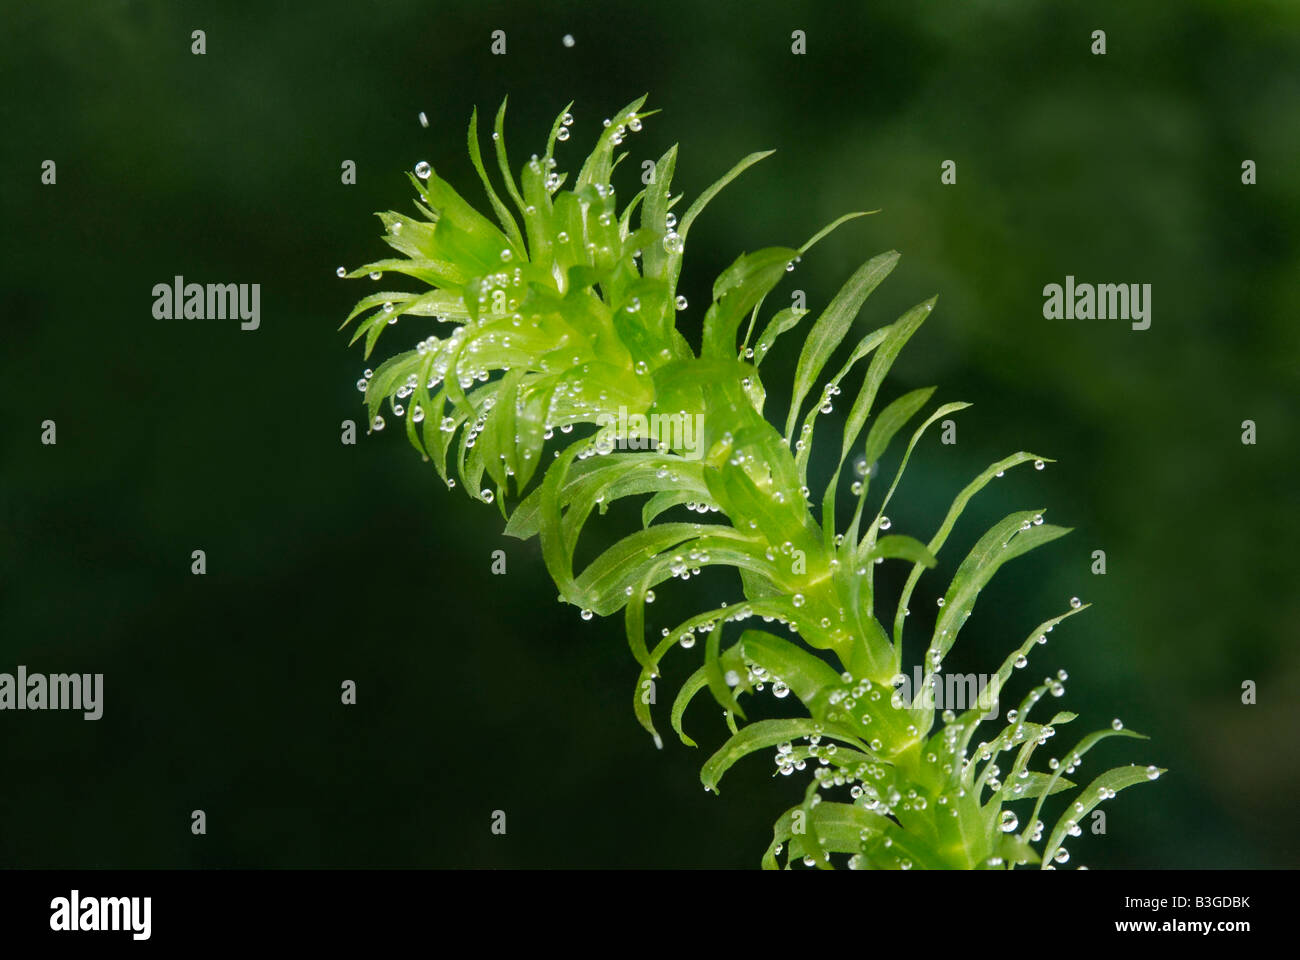 Sprig of the aquatic plant elodea pond weed producing for Oxygen plant